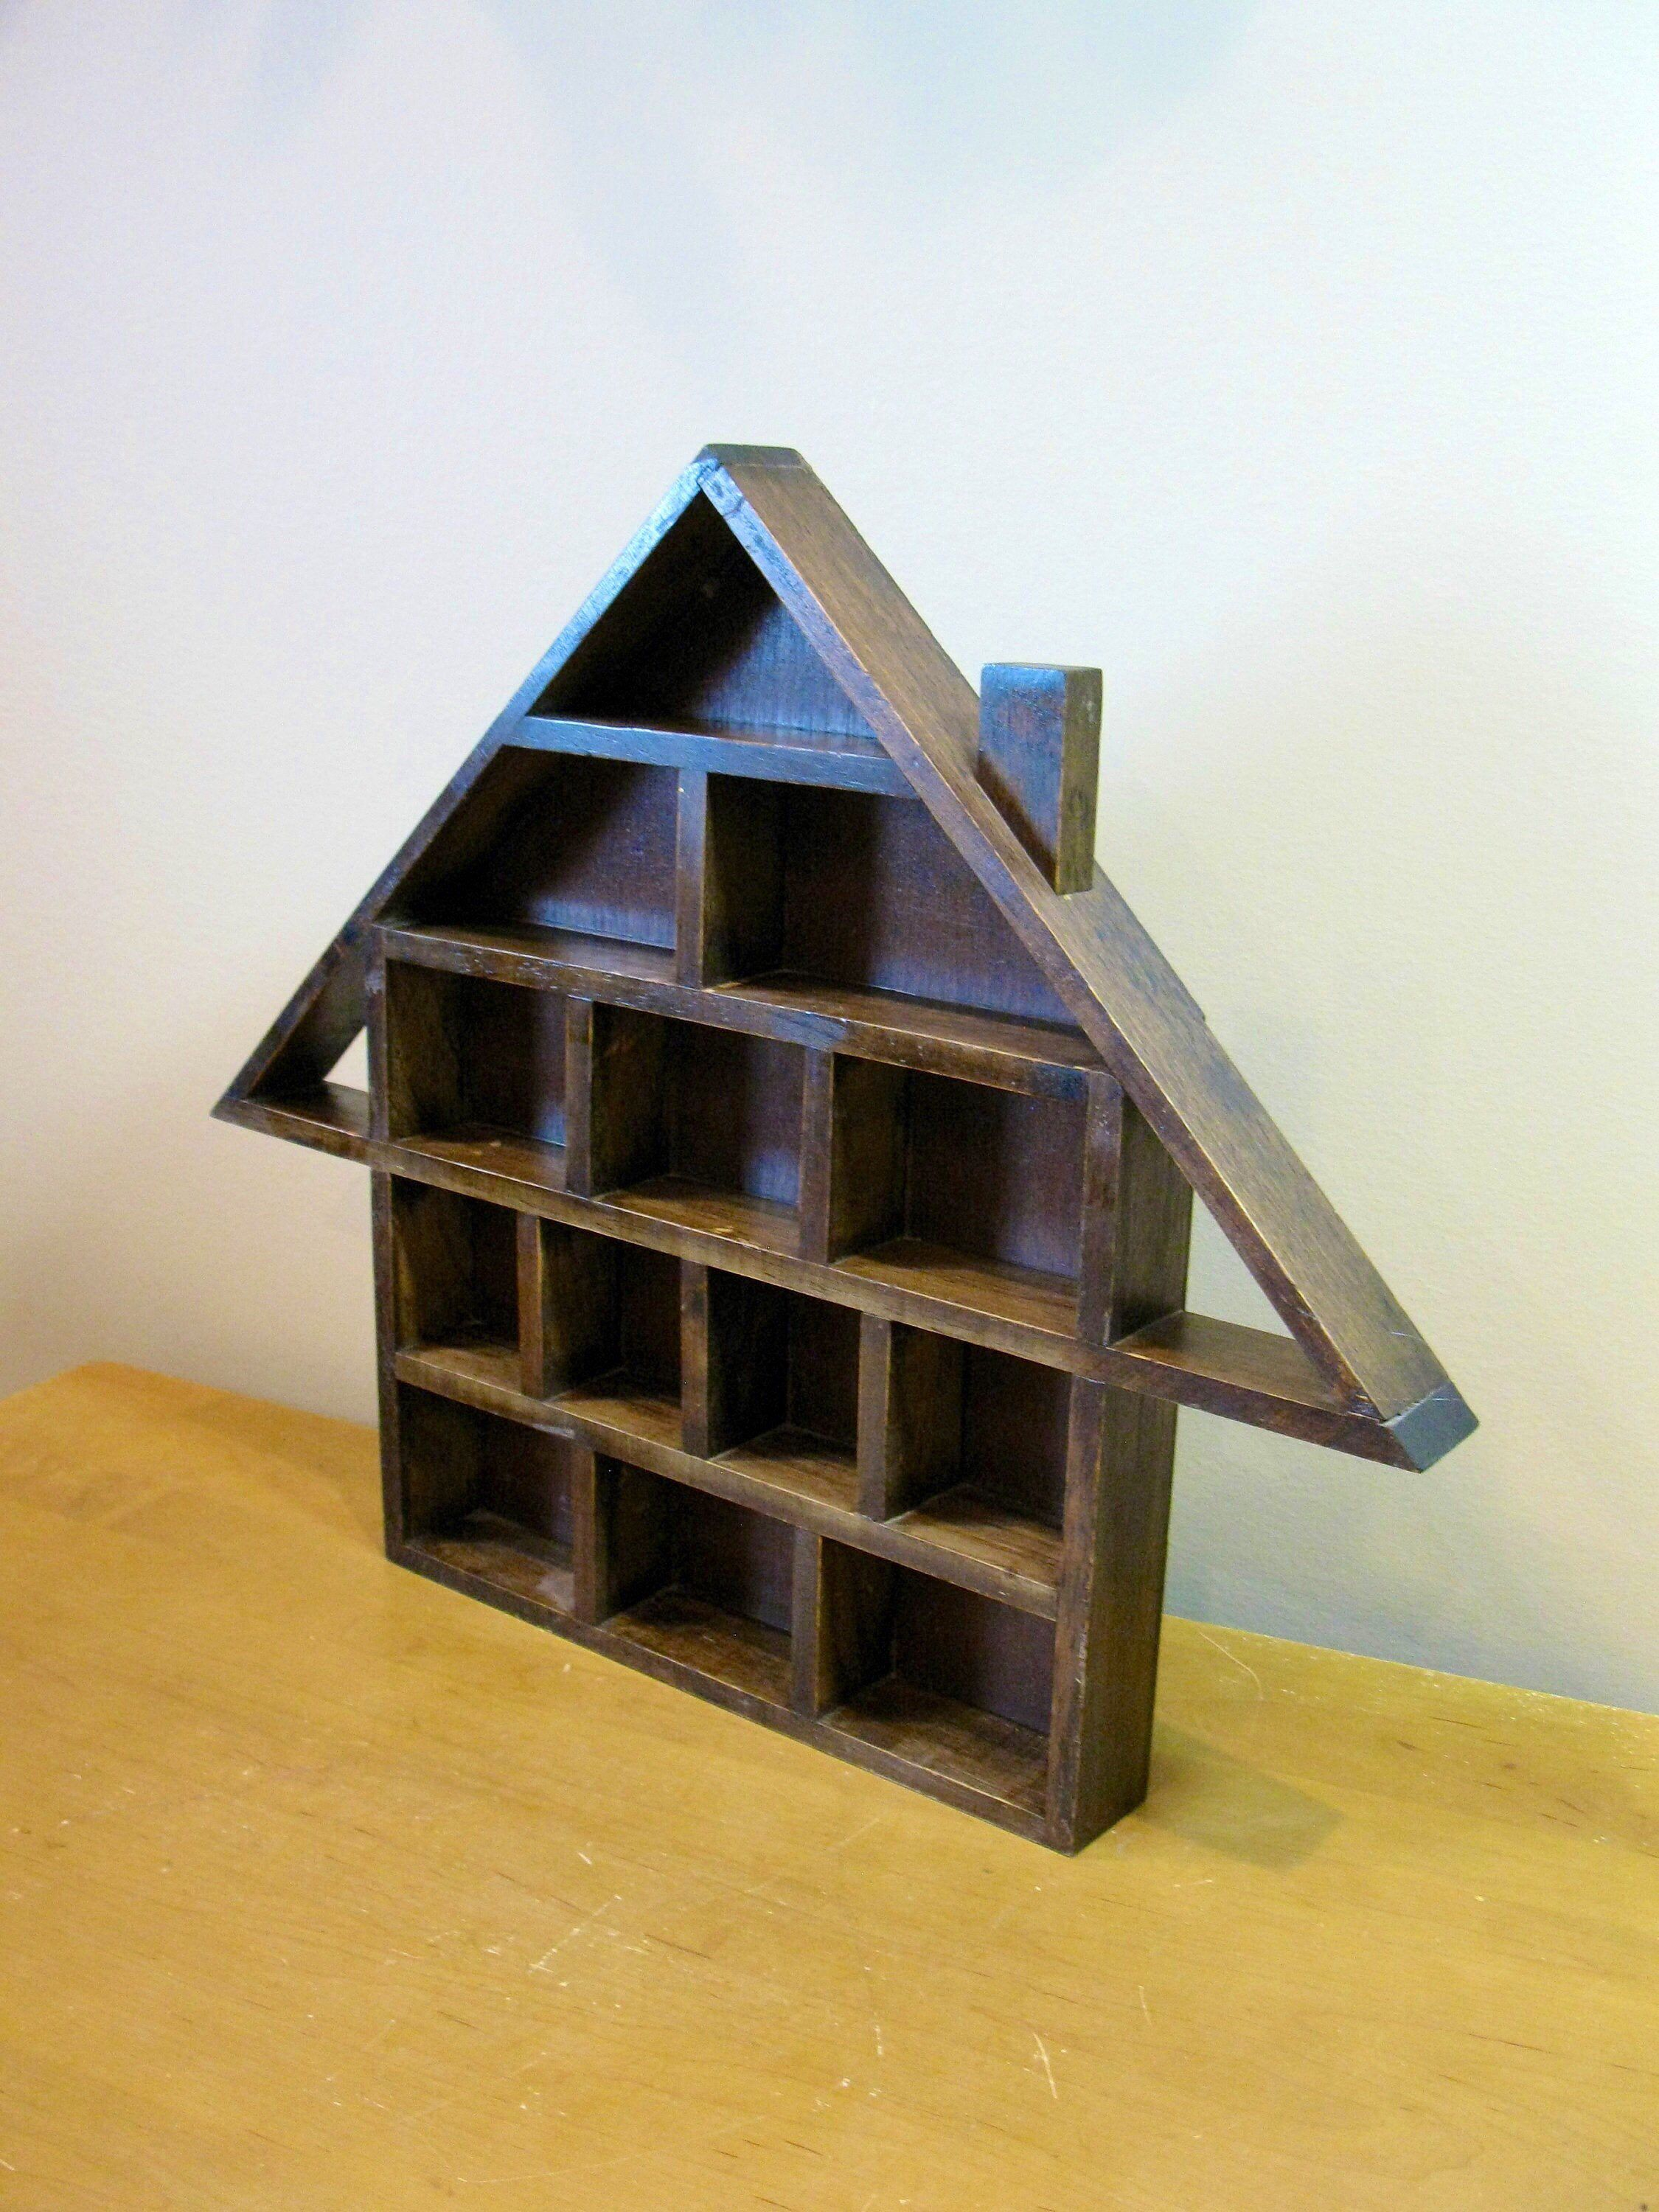 Wood Shadow Box 15 1 2 X 19 House Shaped Knick Knack Trinket Display Case Wall Curio Miniatures Collections Case 15 Compartment In 2020 Wood Shadow Box Shadow Box Wood